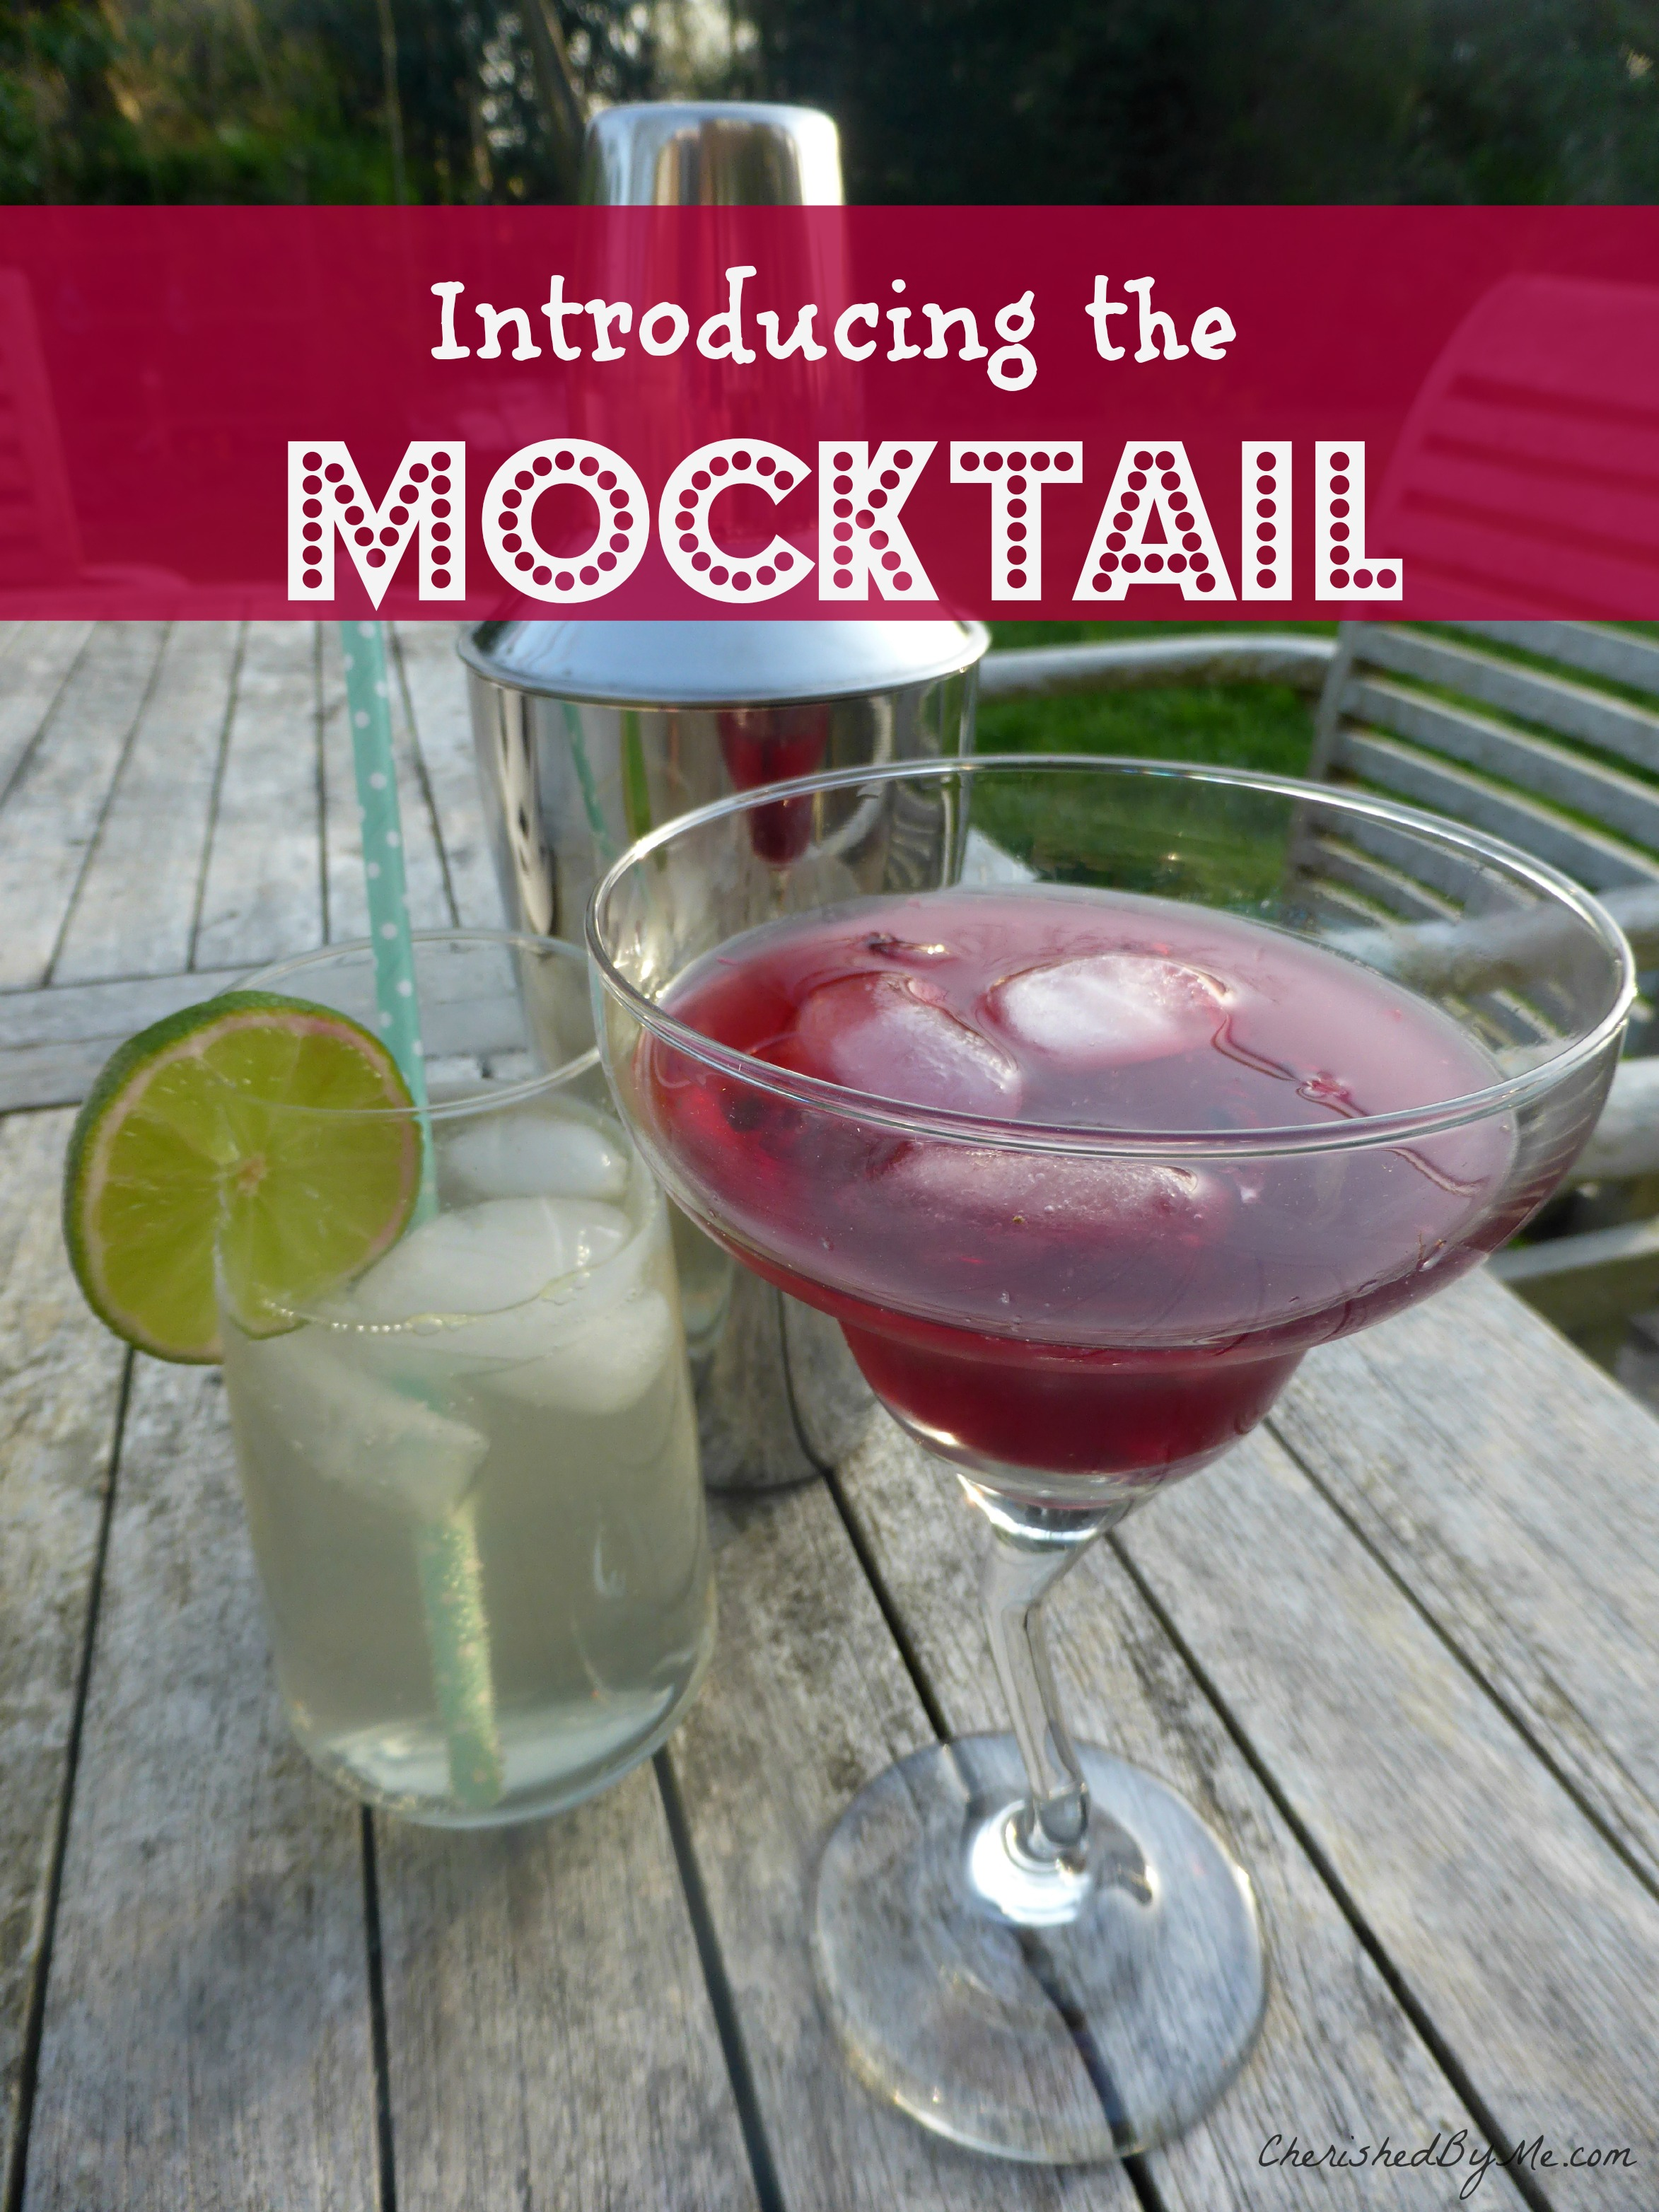 The Mocktail